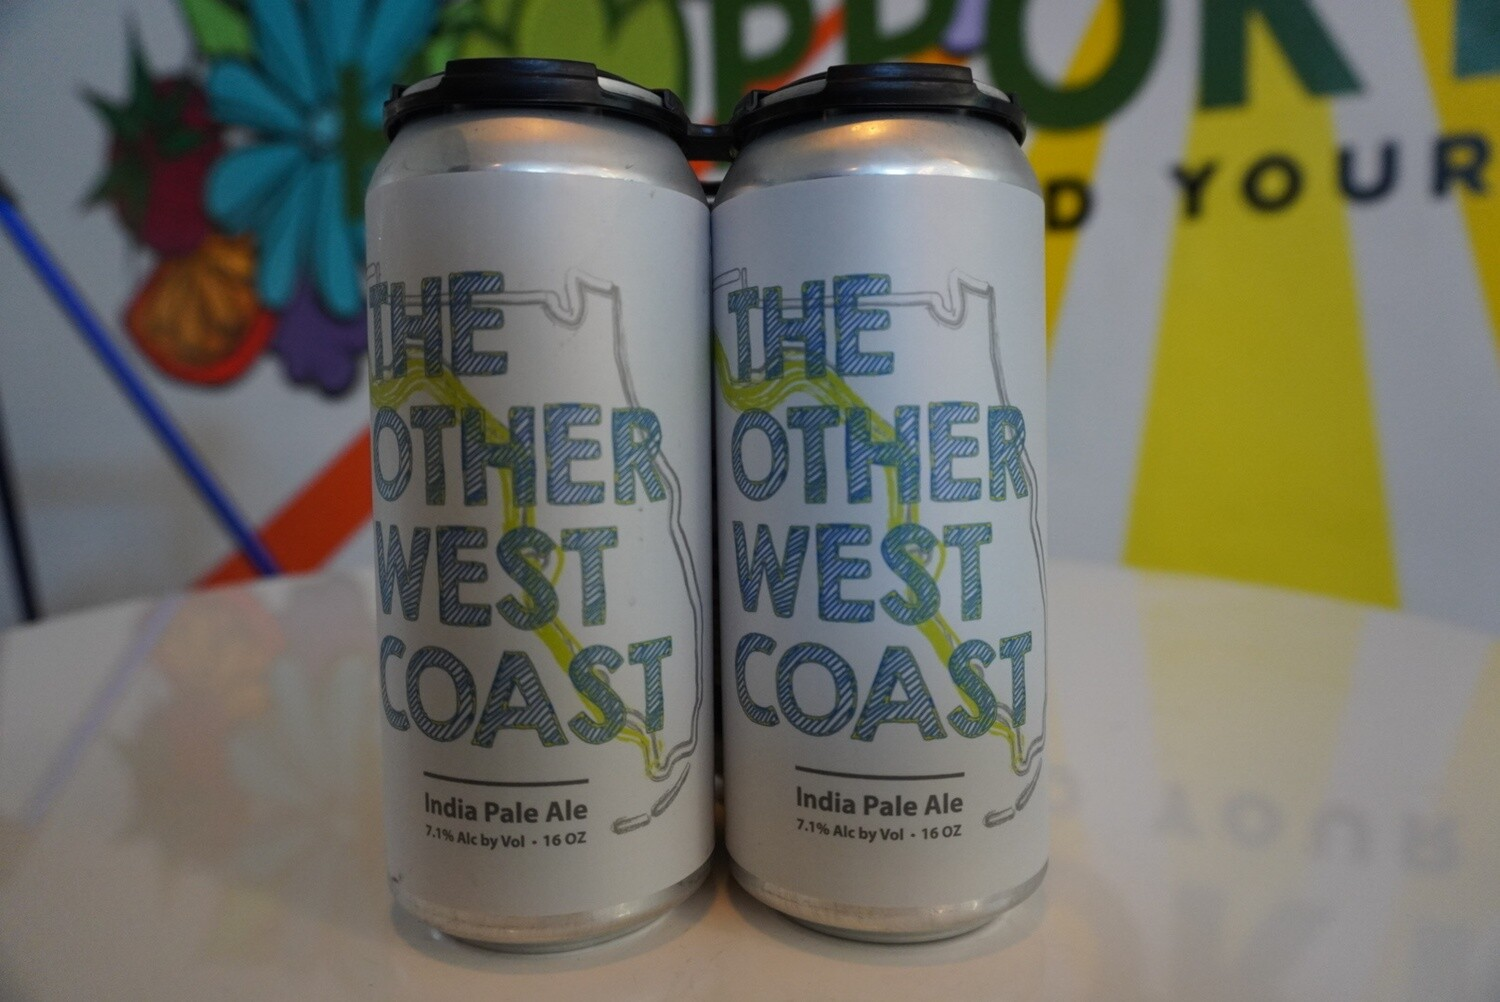 Escape - Other West Coast - IPA - 7.2% ABV - 4-Pack